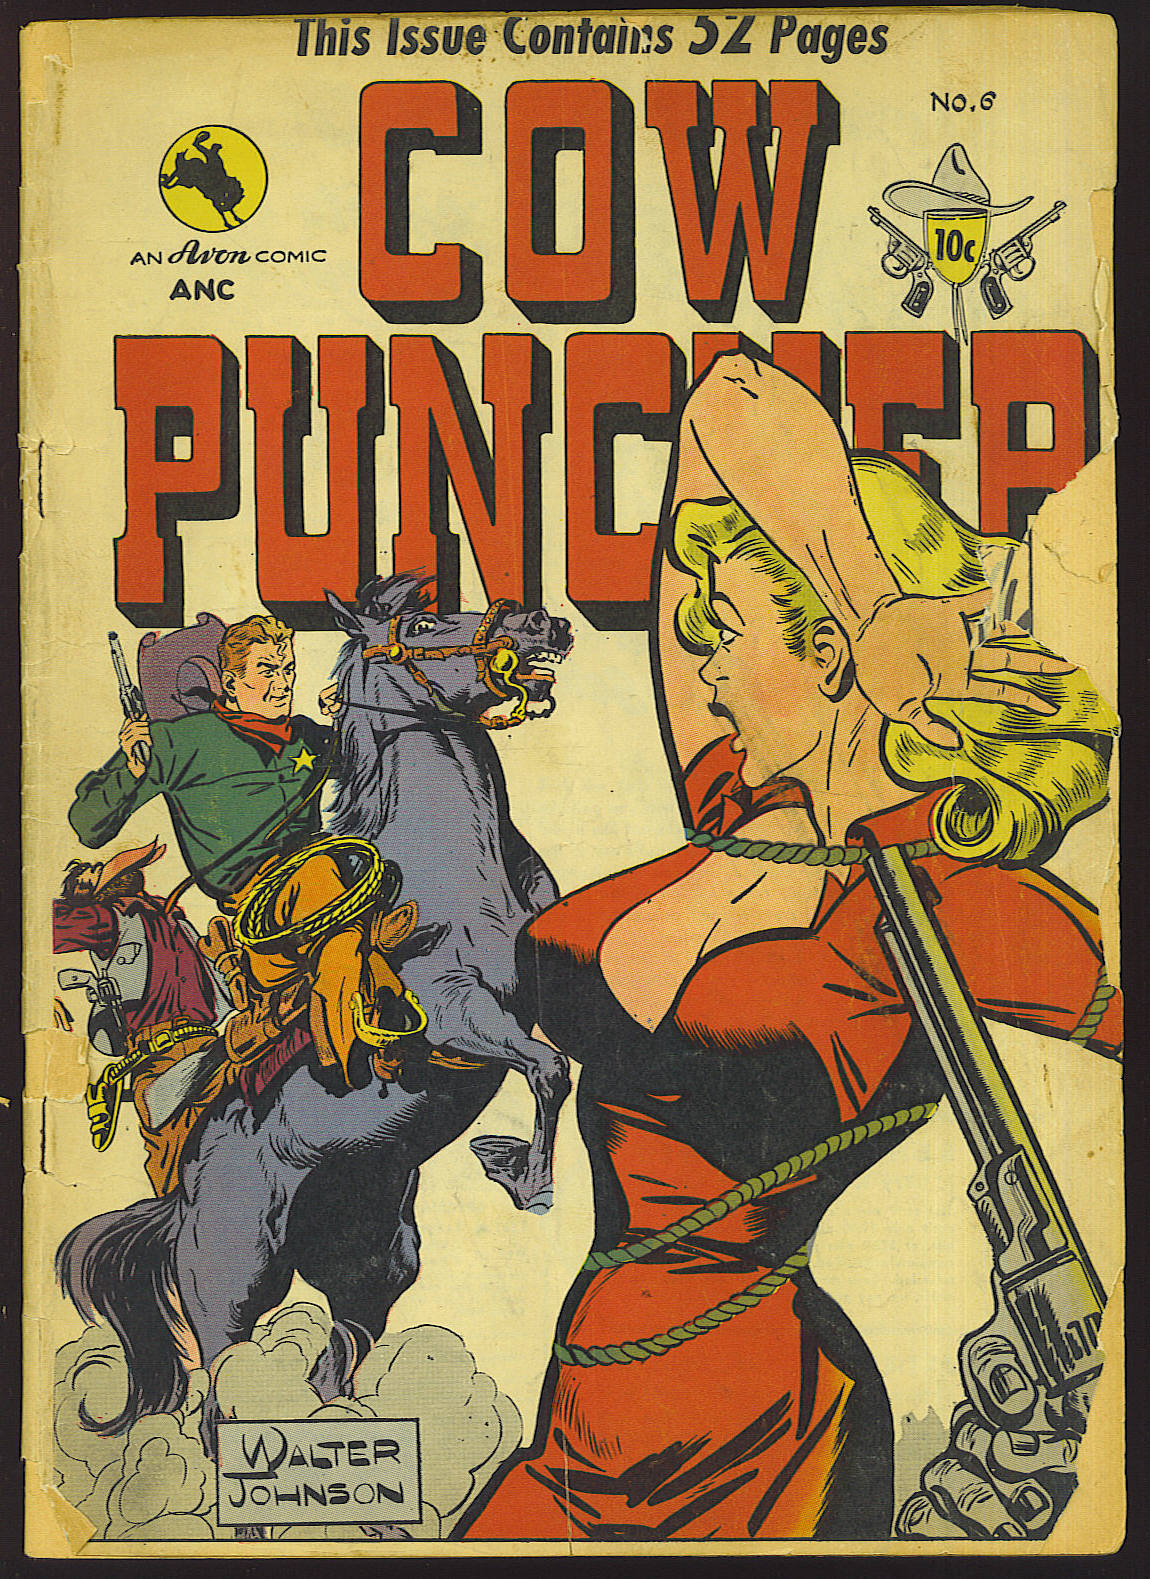 Best Book Covers Ever : The butcher shop best comic book covers ever